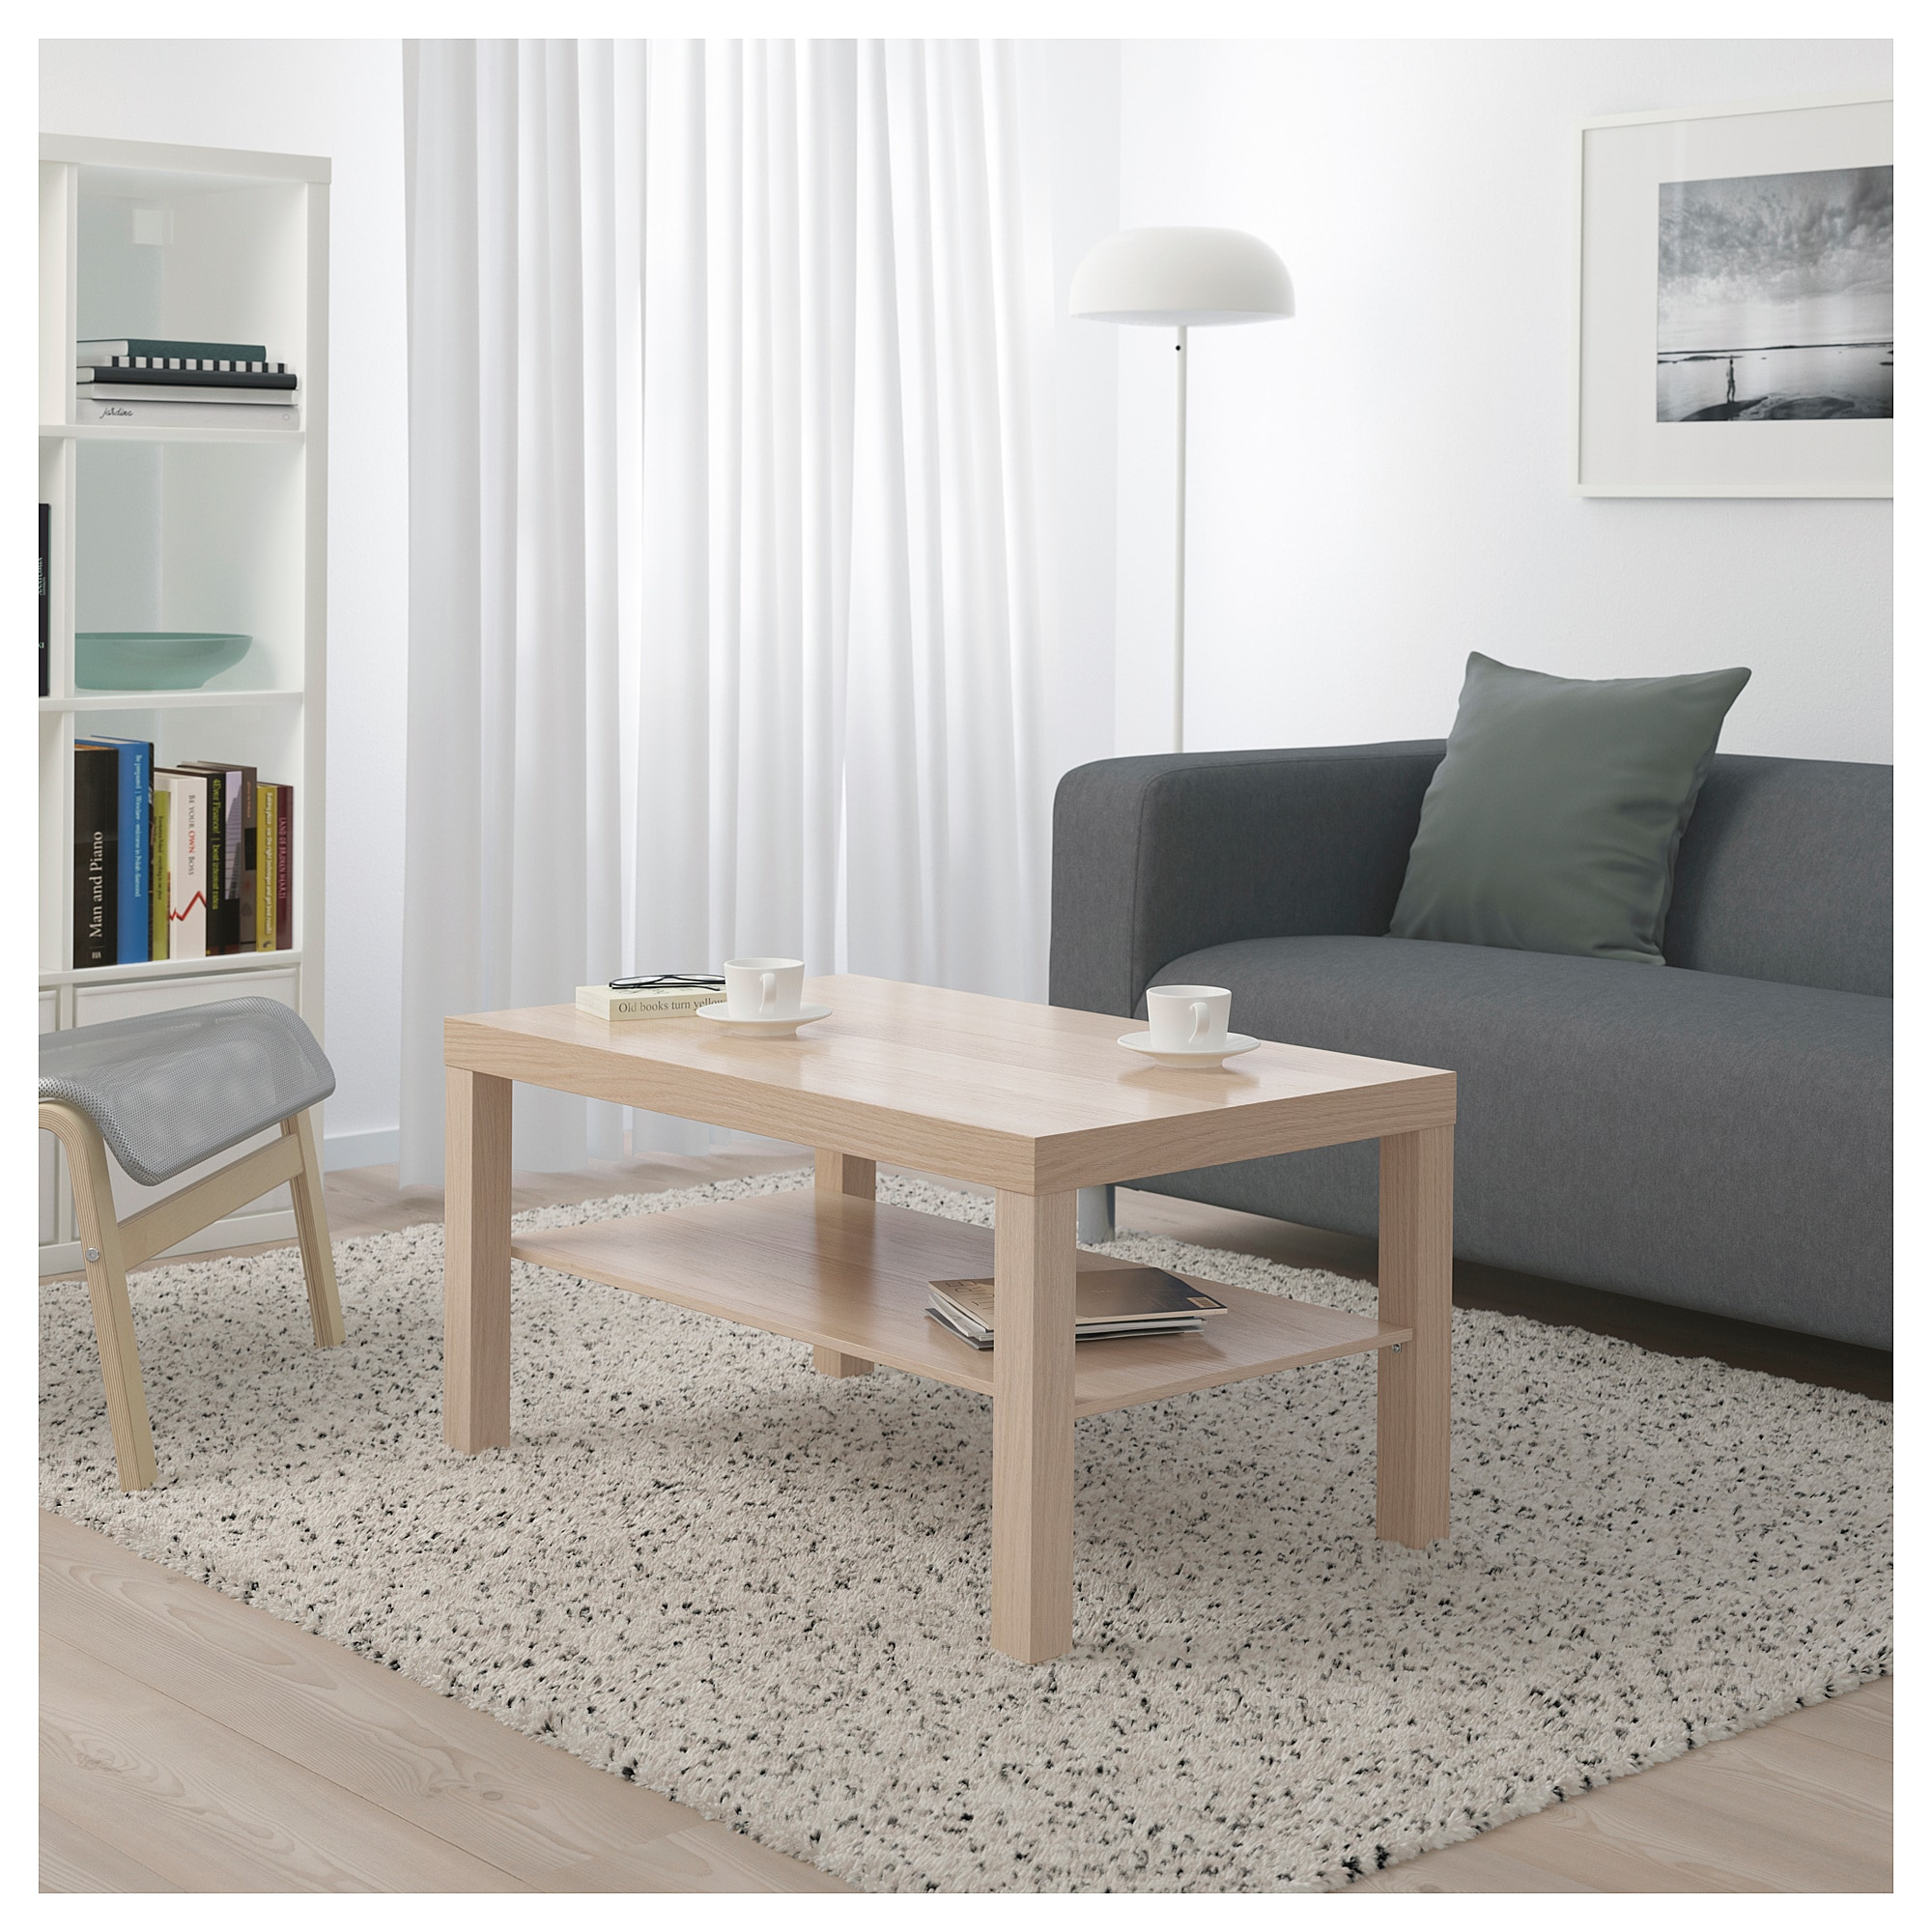 Ikea Lack Coffee Table White Stained Oak Effect In 2019